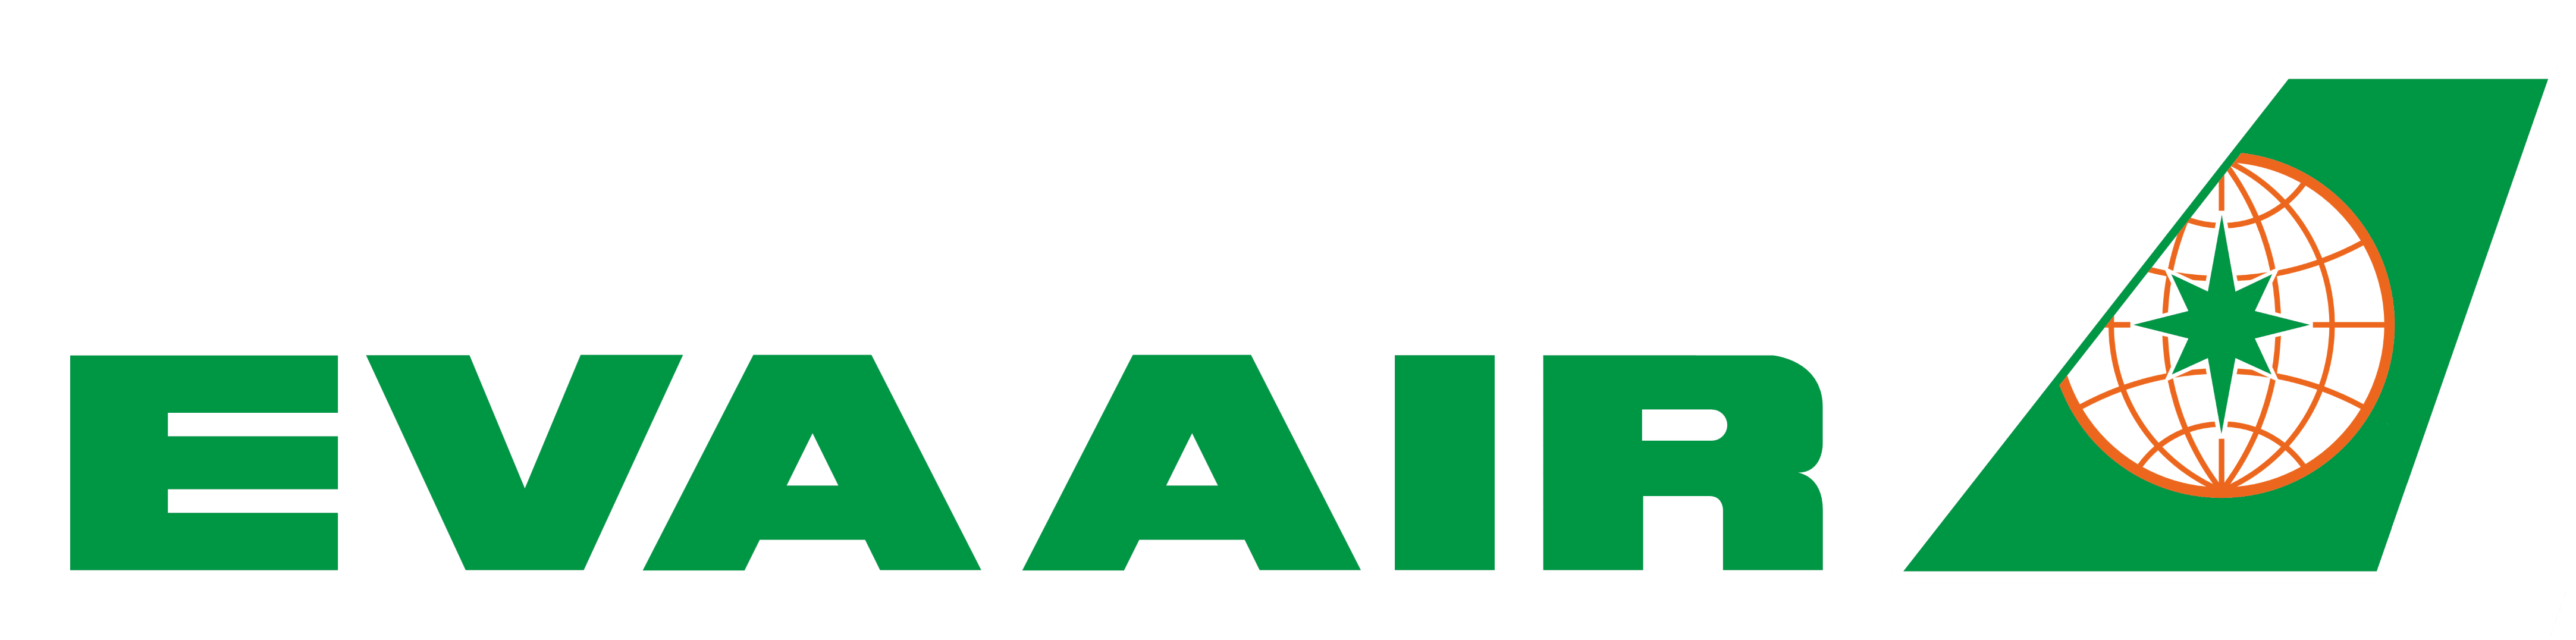 Eva Air-logo